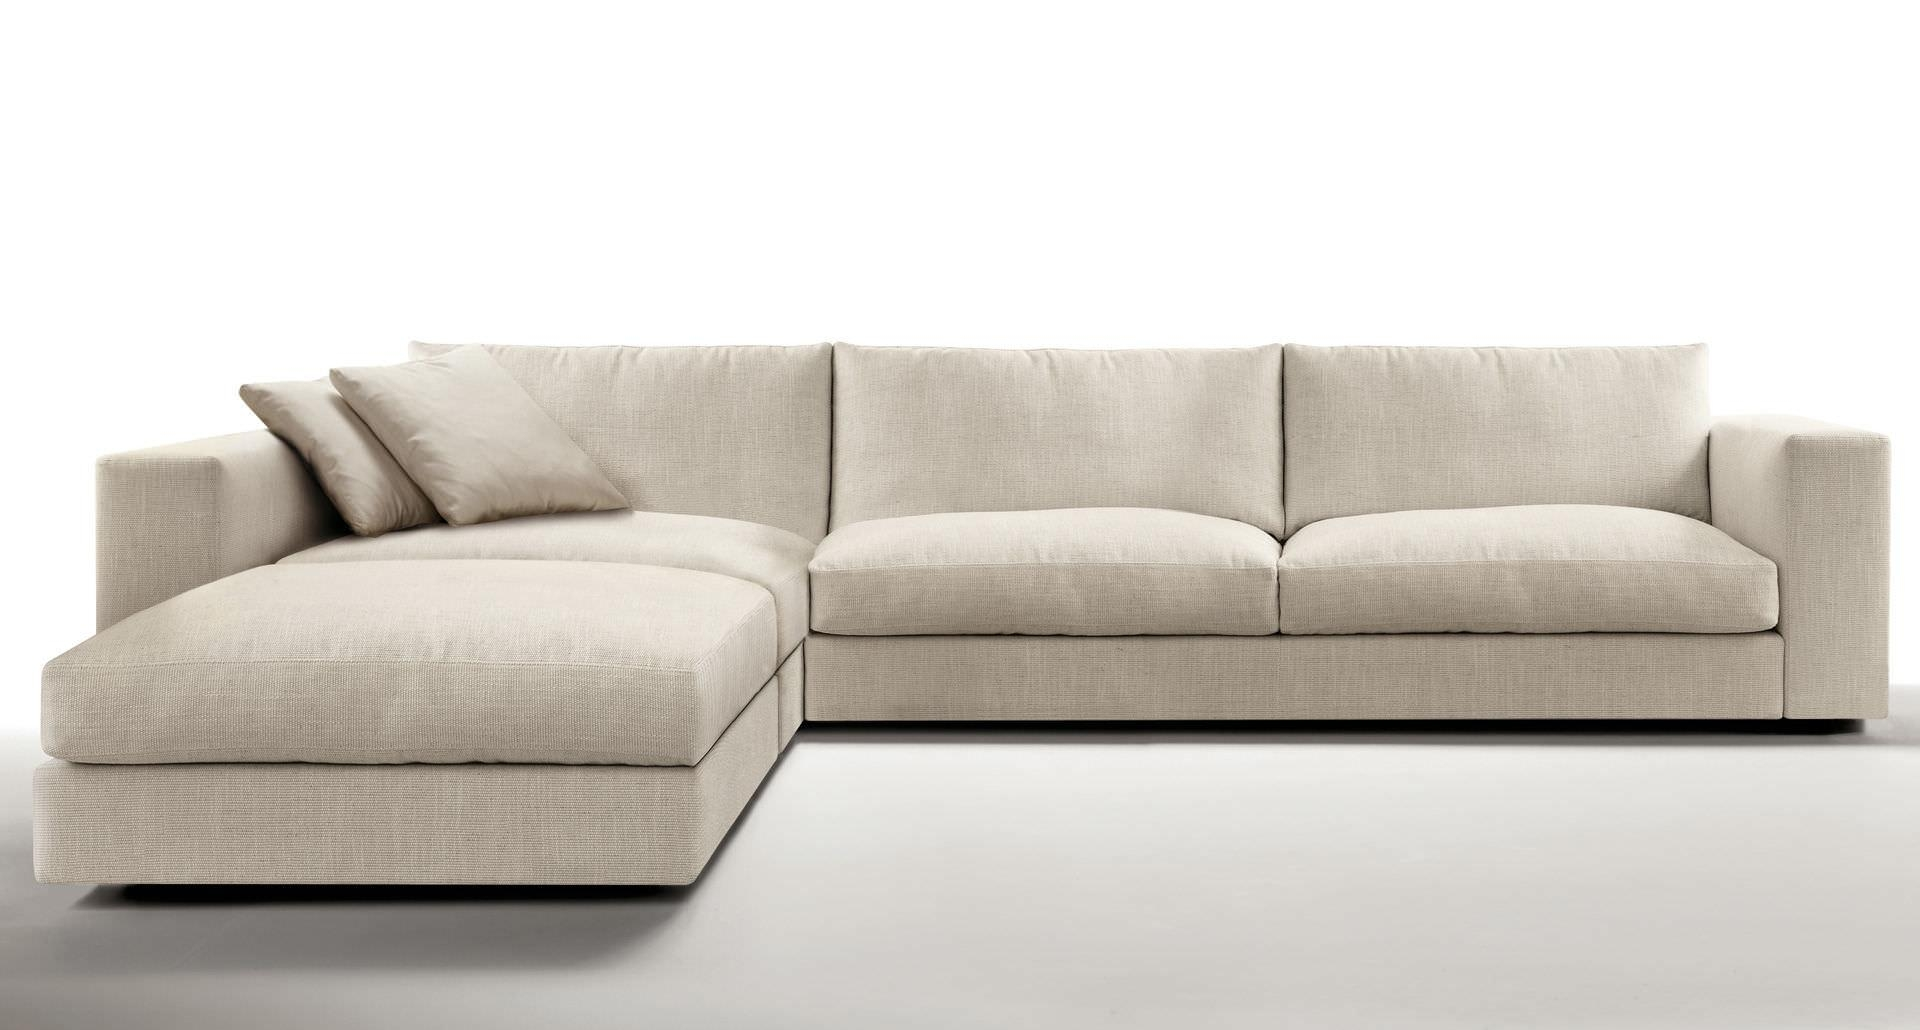 Sale Cheap Couches Online